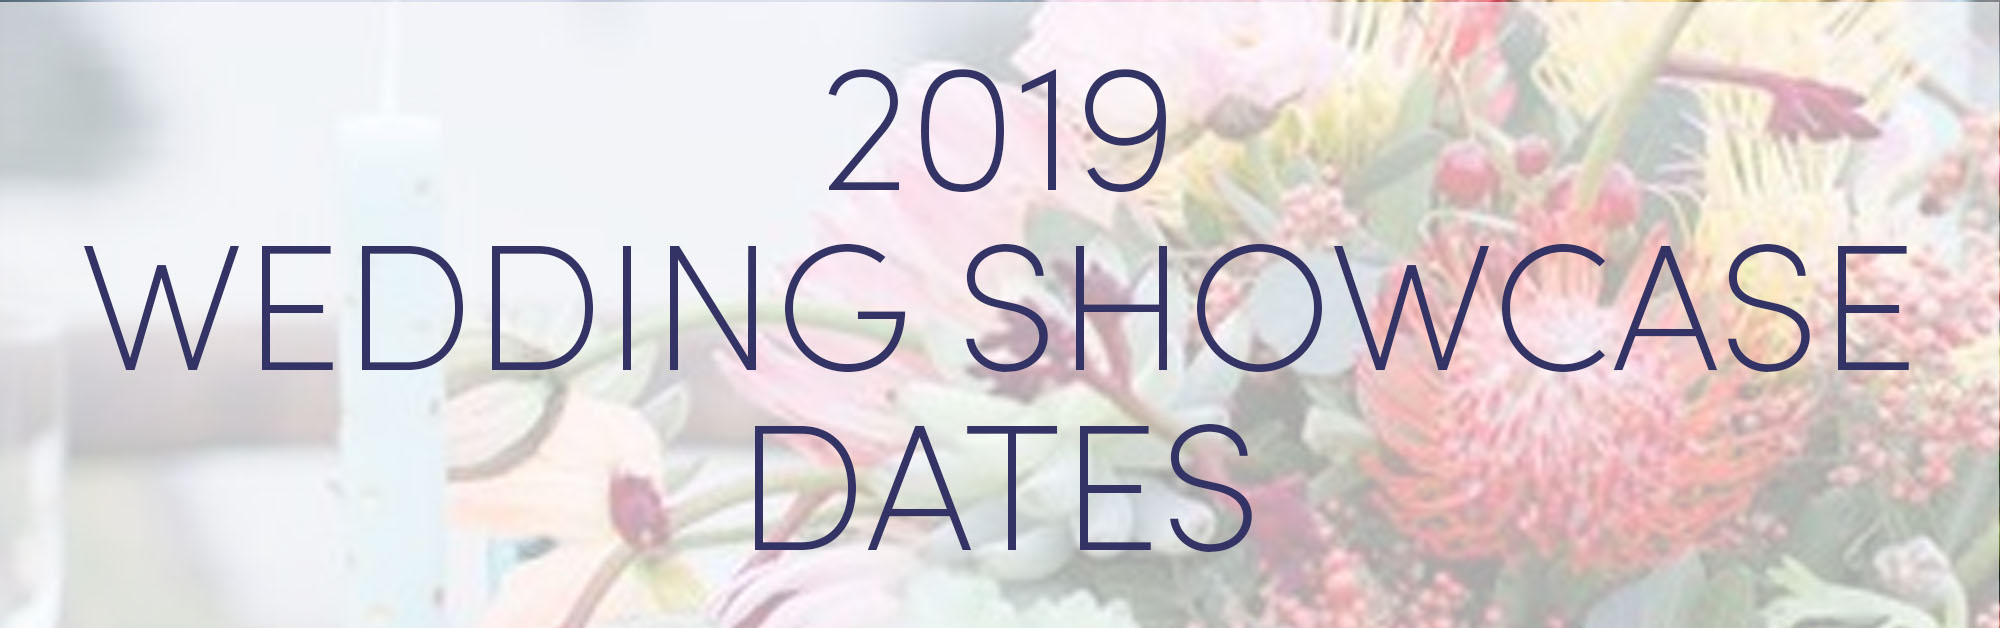 Wedding Showcase Dates 2019 Wedgewood Weddings